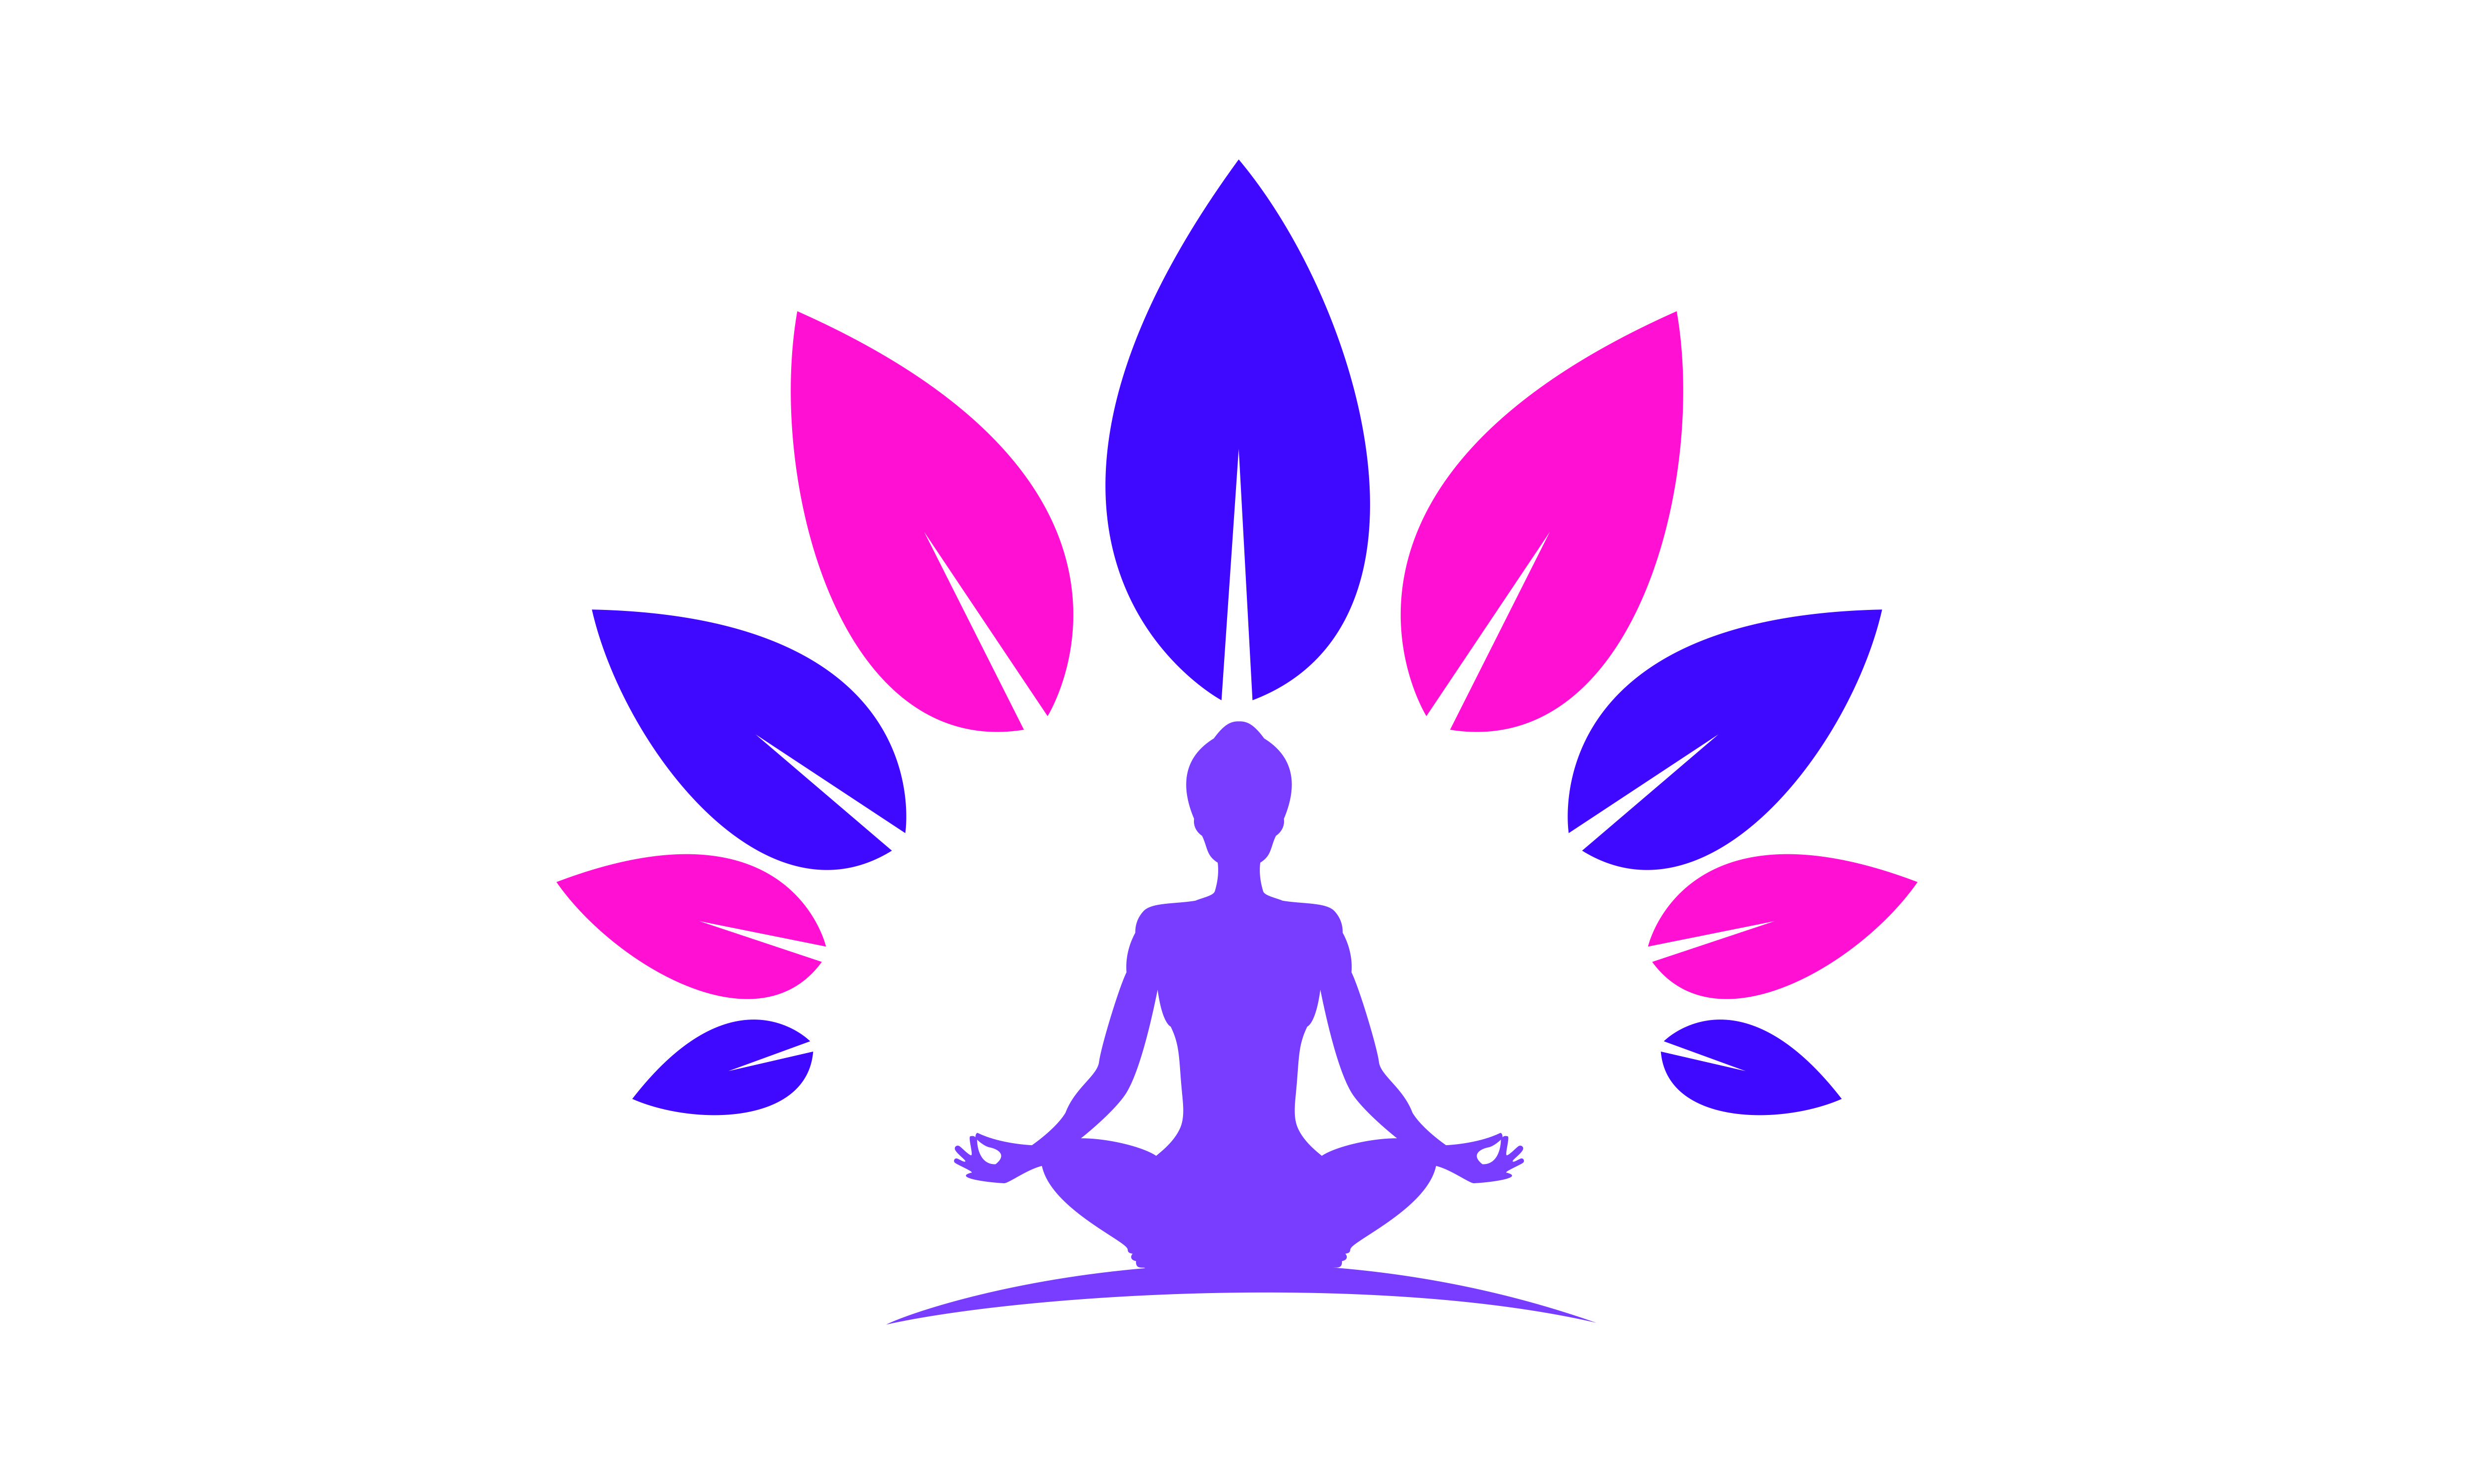 Download Free Yoga Logo Design Stock Human Meditation Graphic By Deemka for Cricut Explore, Silhouette and other cutting machines.